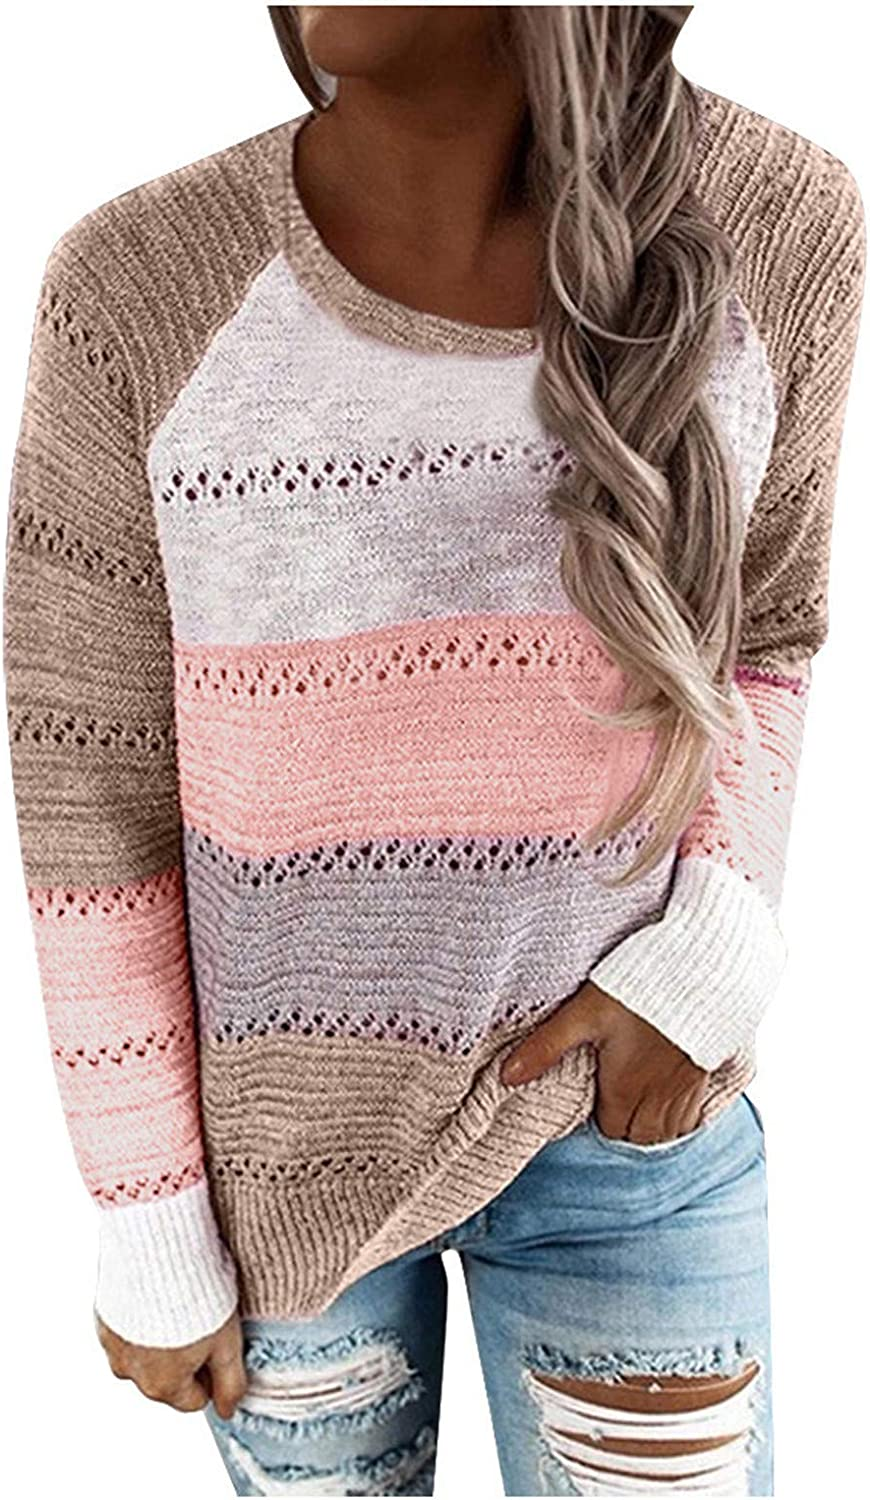 Womens Casual Crewneck Tie Dye Sweatshirt Fashion Colorblock Striped Printed Loose Soft Long Sleeve Pullover Tops Shirts